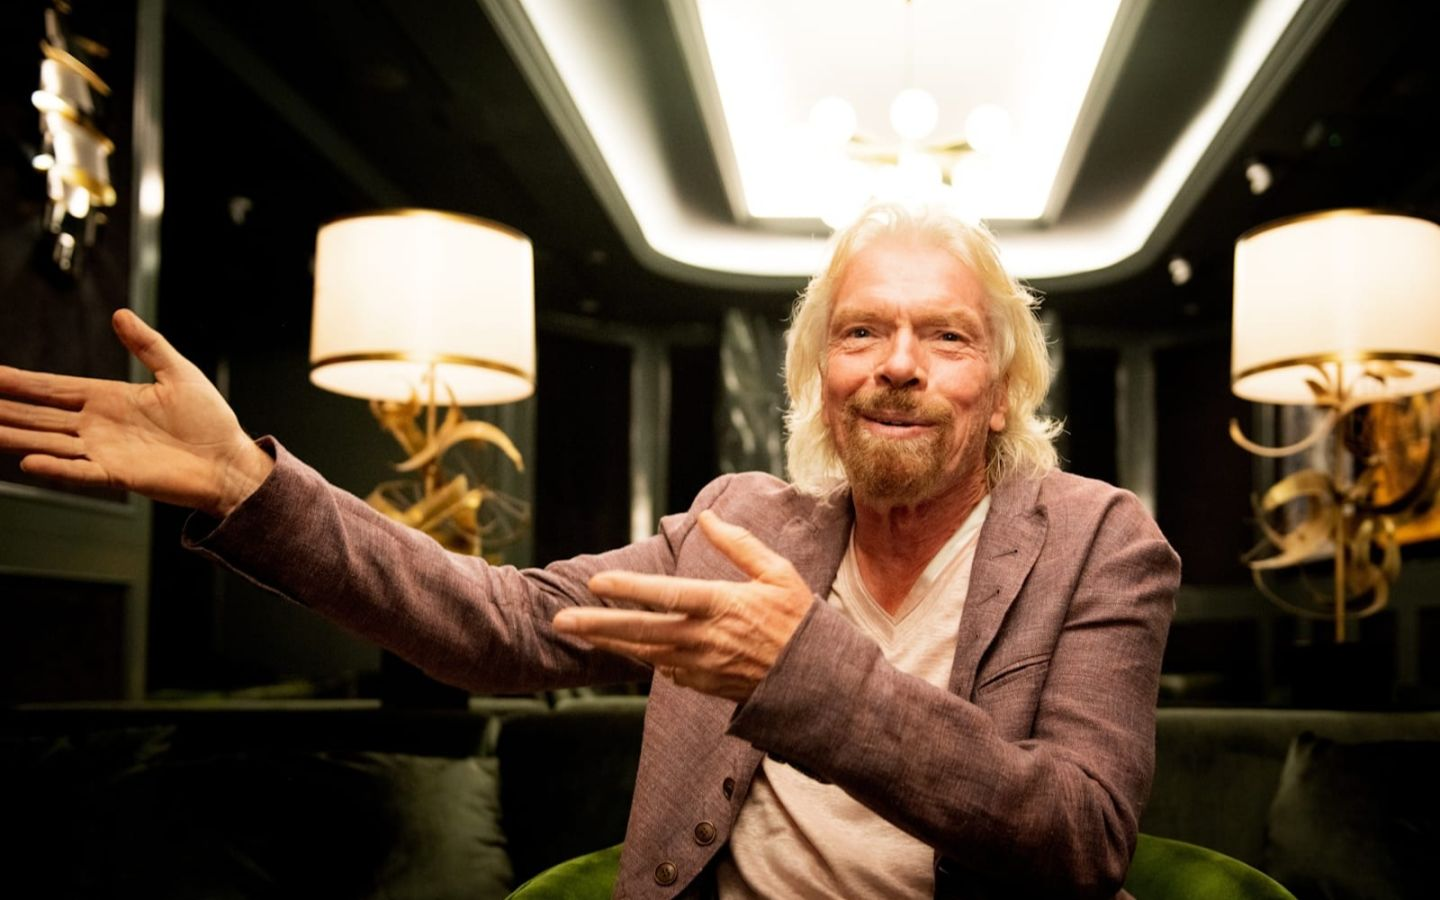 Richard Branson sitting inside a room on Virgin Voyages cruise ship smiling and gesticulating to the left